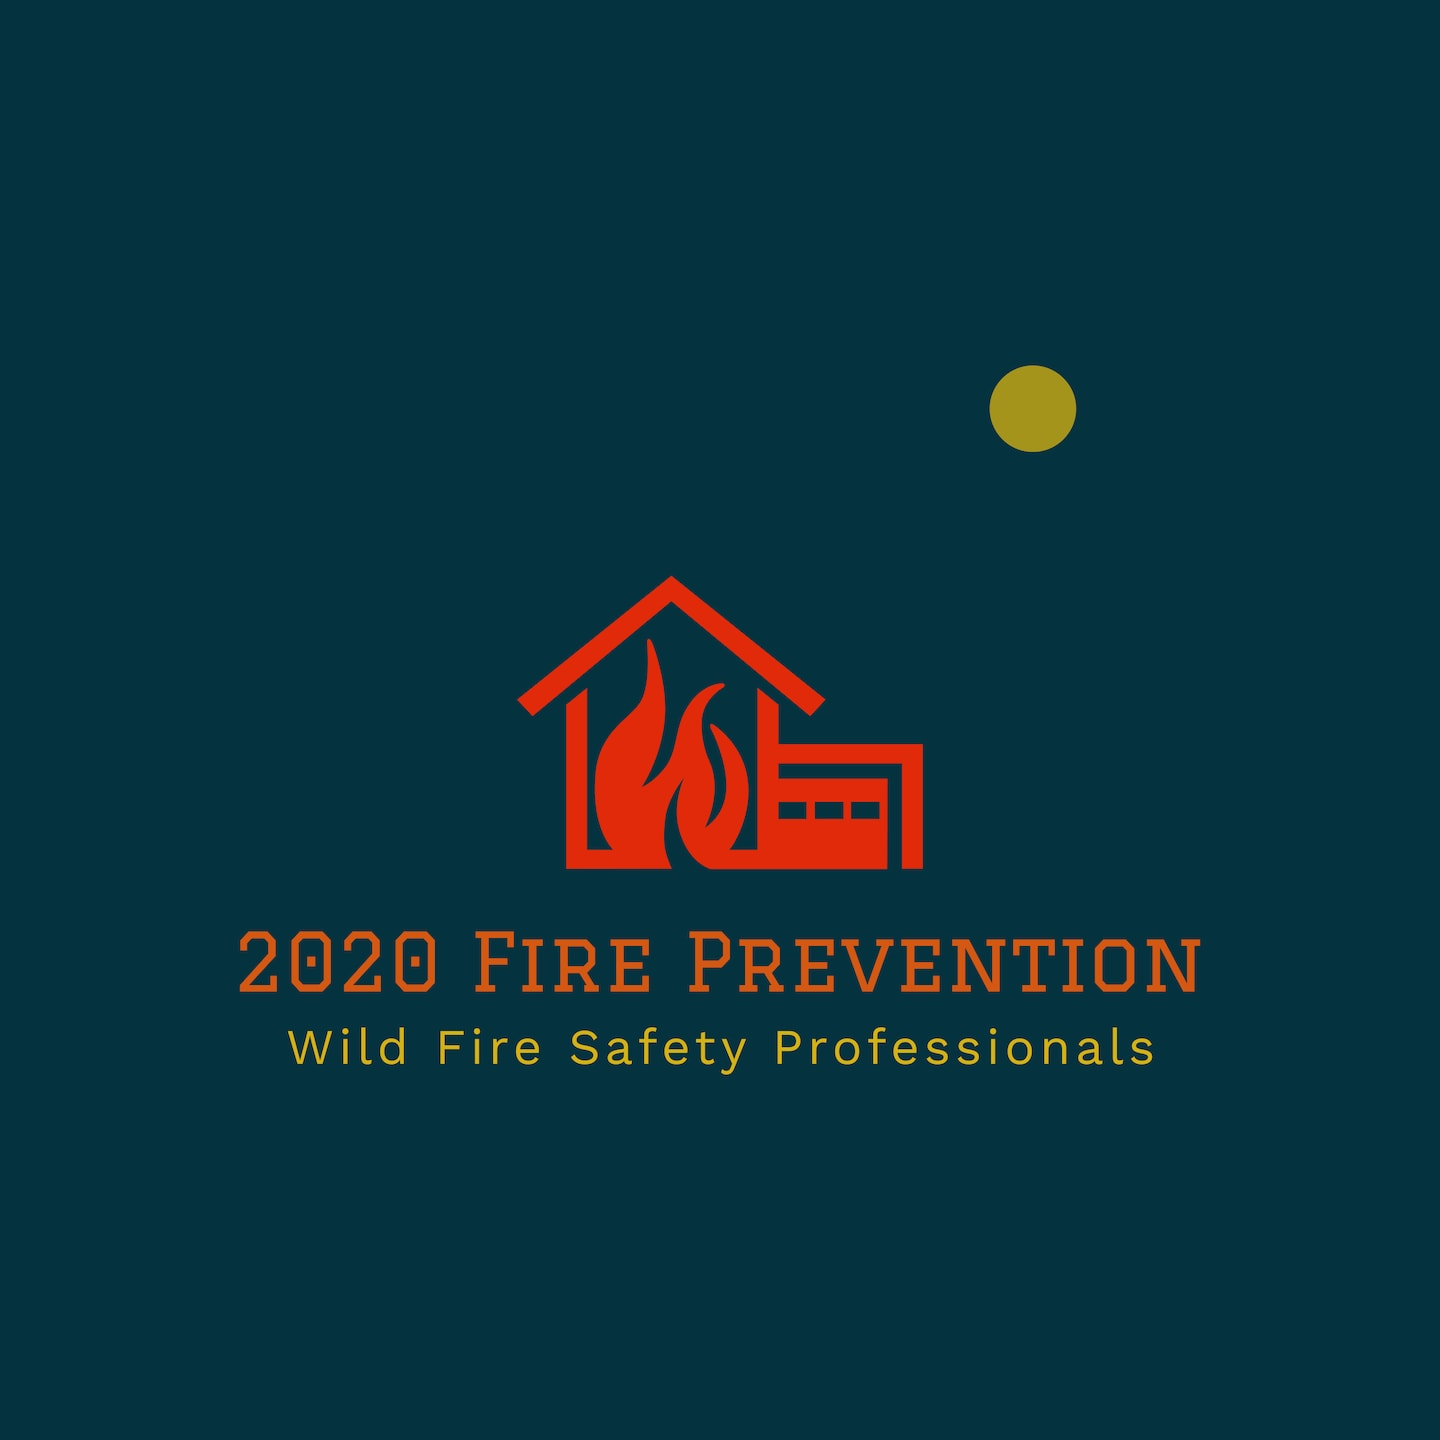 2020 Fire Prevention